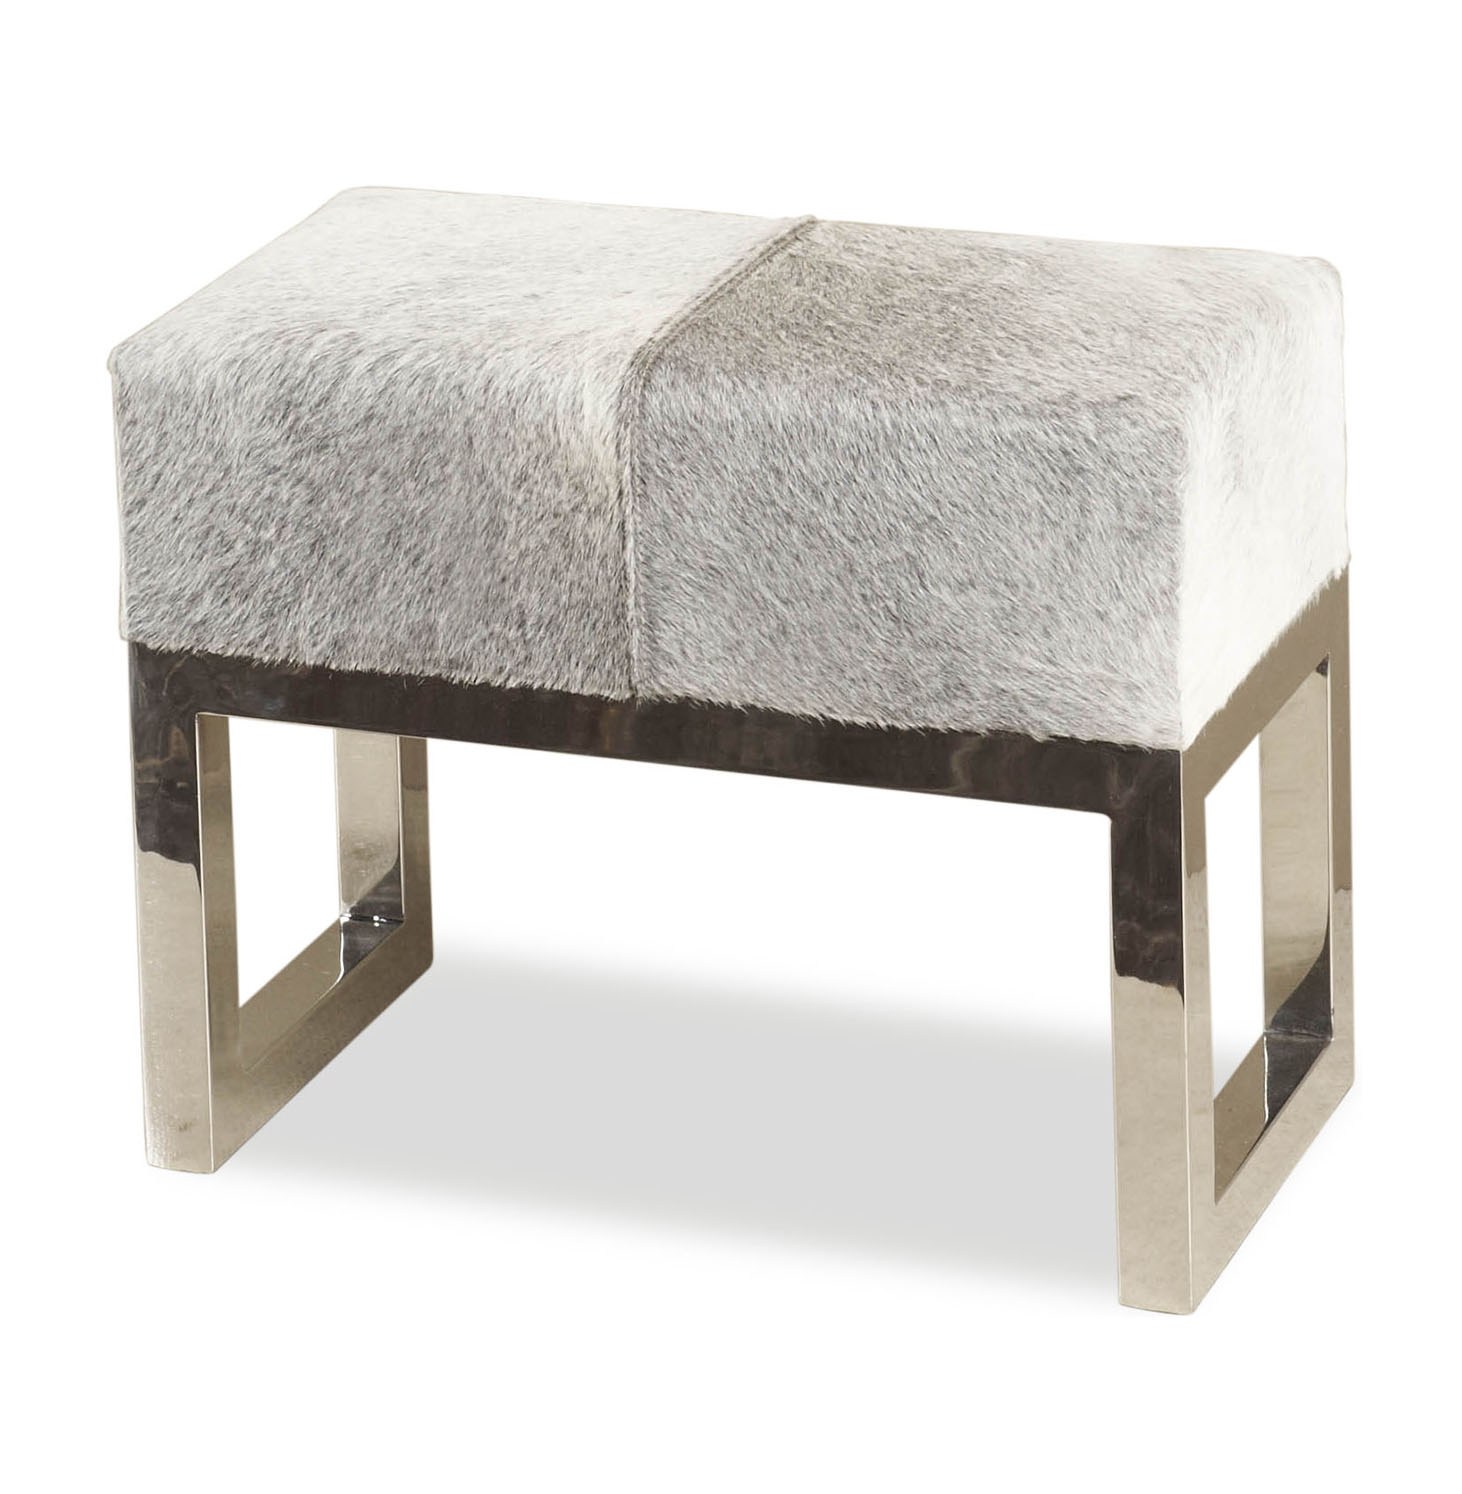 Designer Stools Ottomans Eclectic Stools Ottomans Kathy Kuo Home